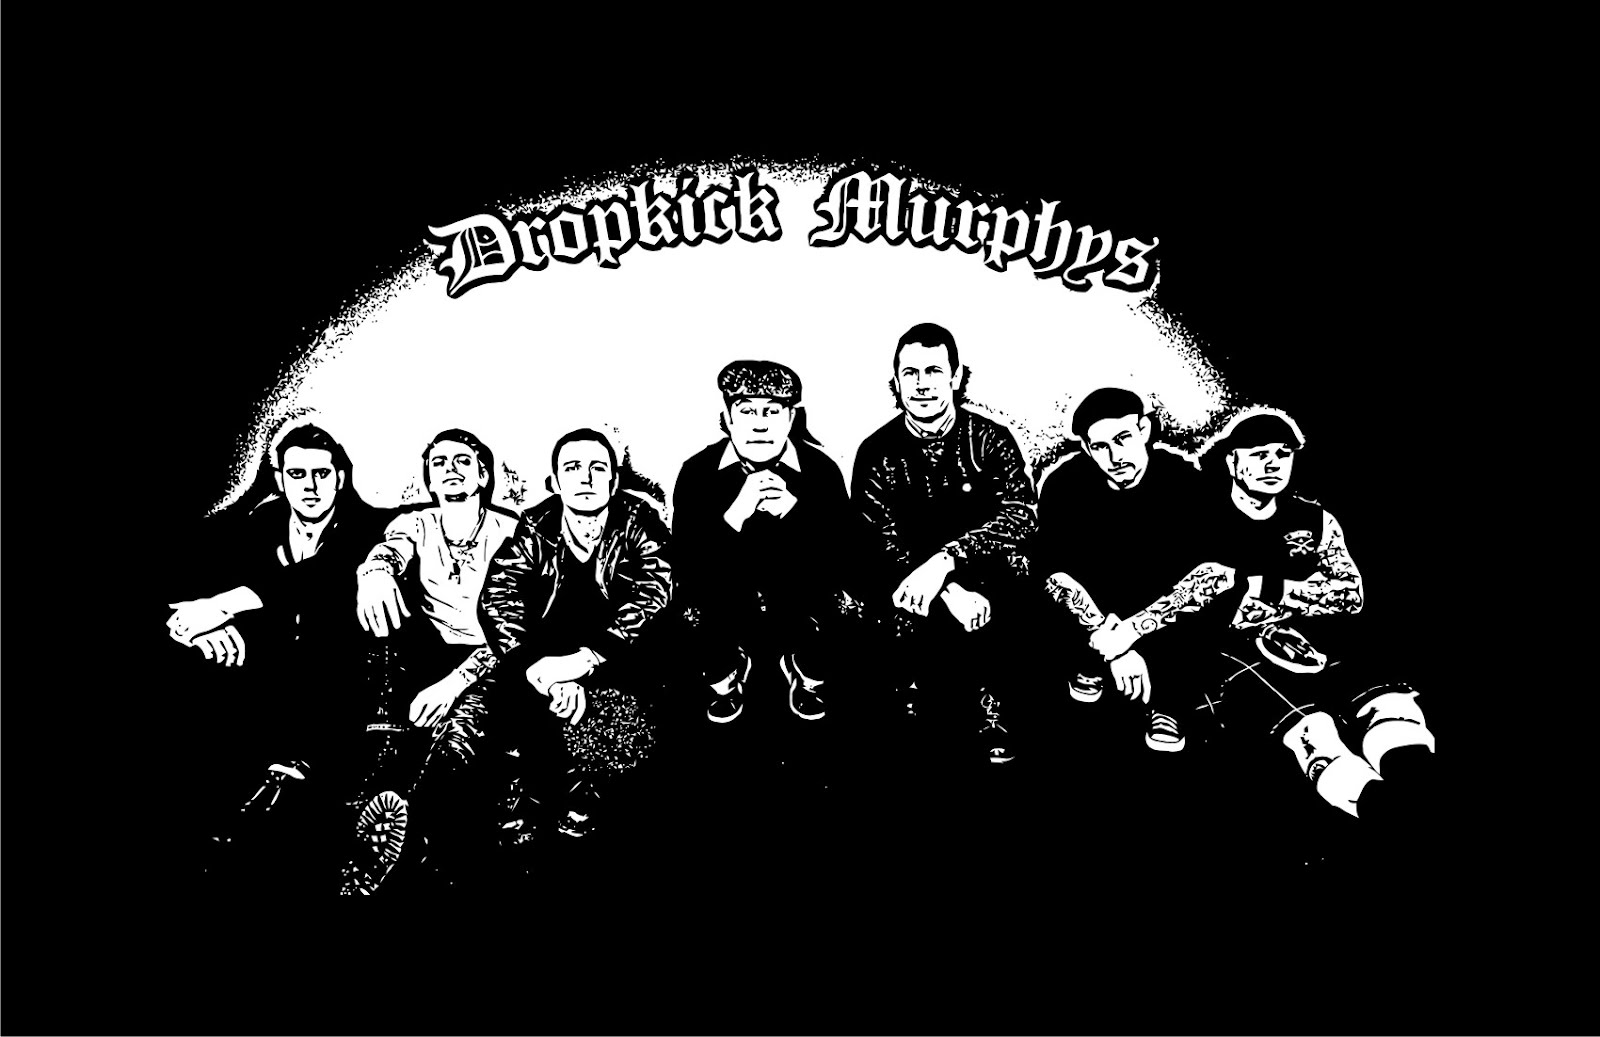 dropkick_murphys-group_back_vector